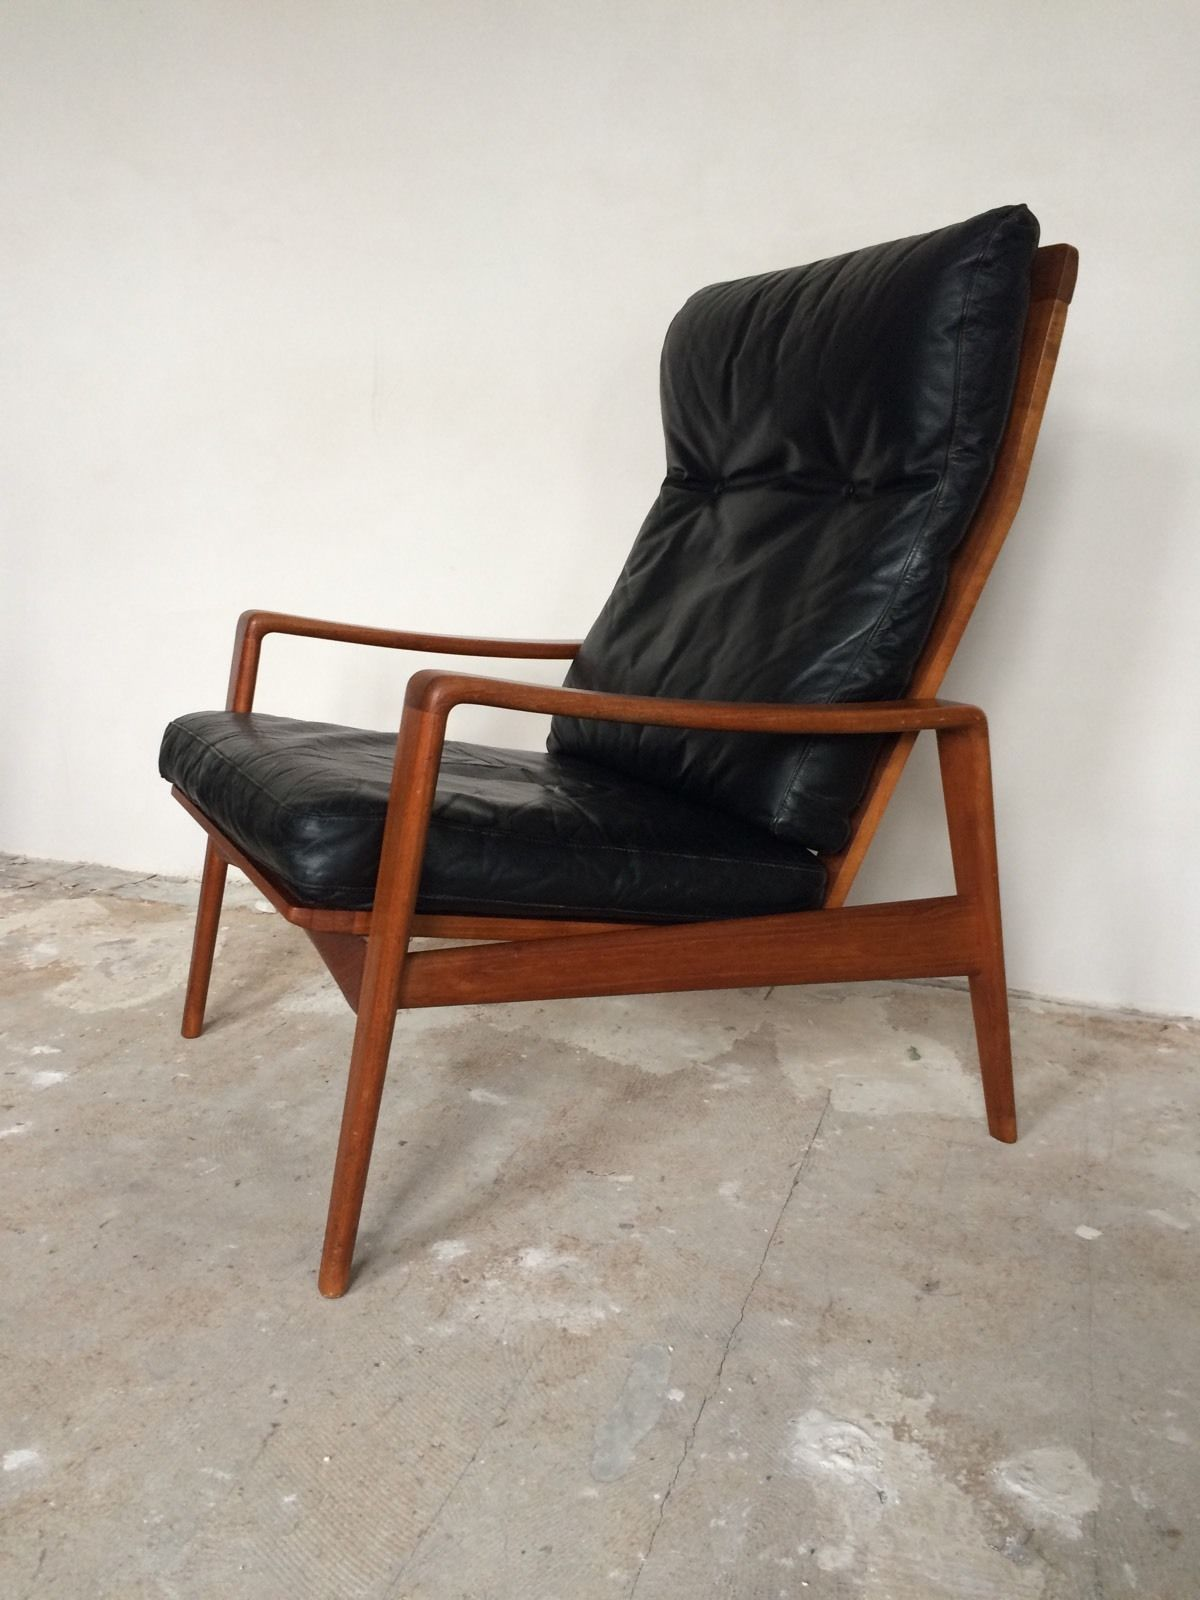 Danish Chair Plans Arne Wahl Iversen Komfort Lounge Chair Teak 60s Danish